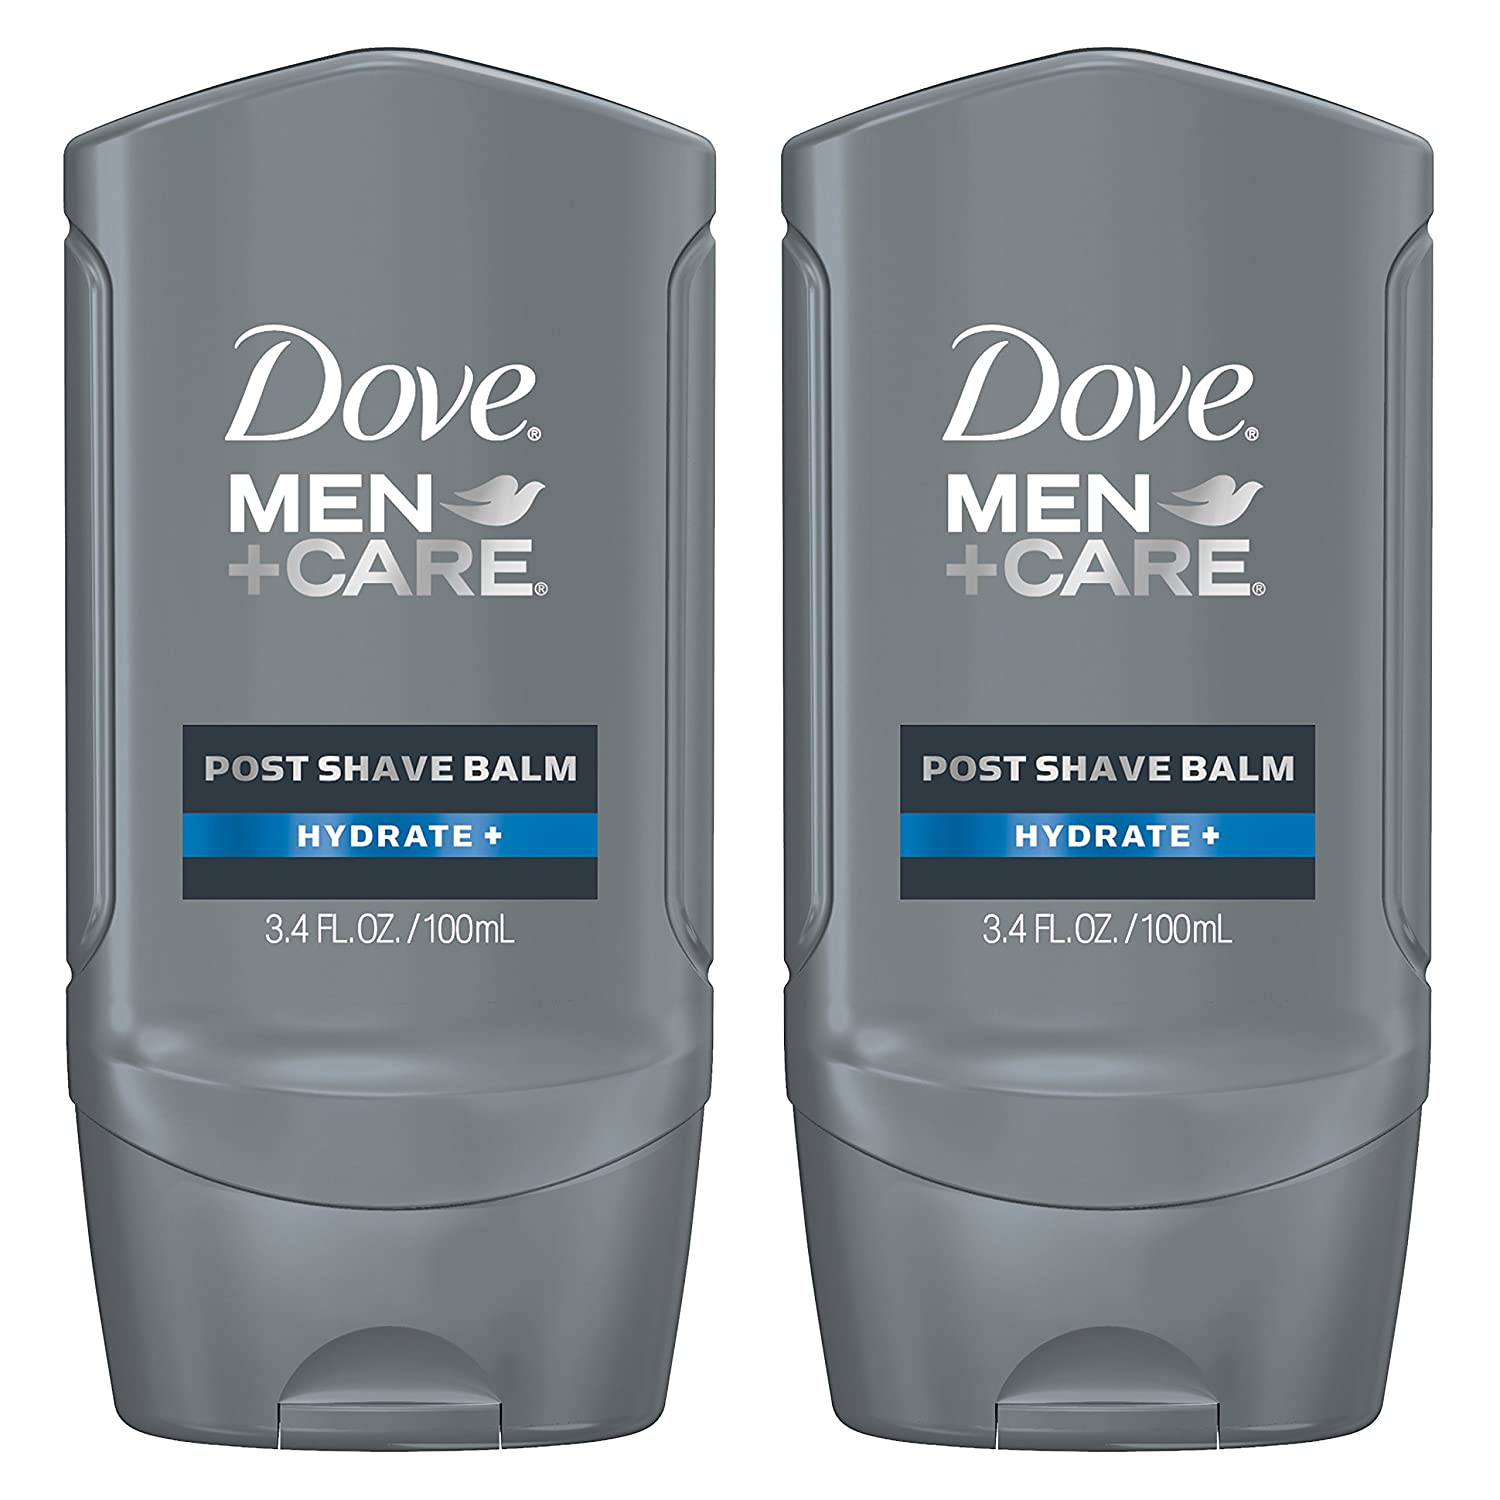 Dove Men+Care Face Care Post Shave Balm, Sensitive 3.4 oz Unilever 10011111260099